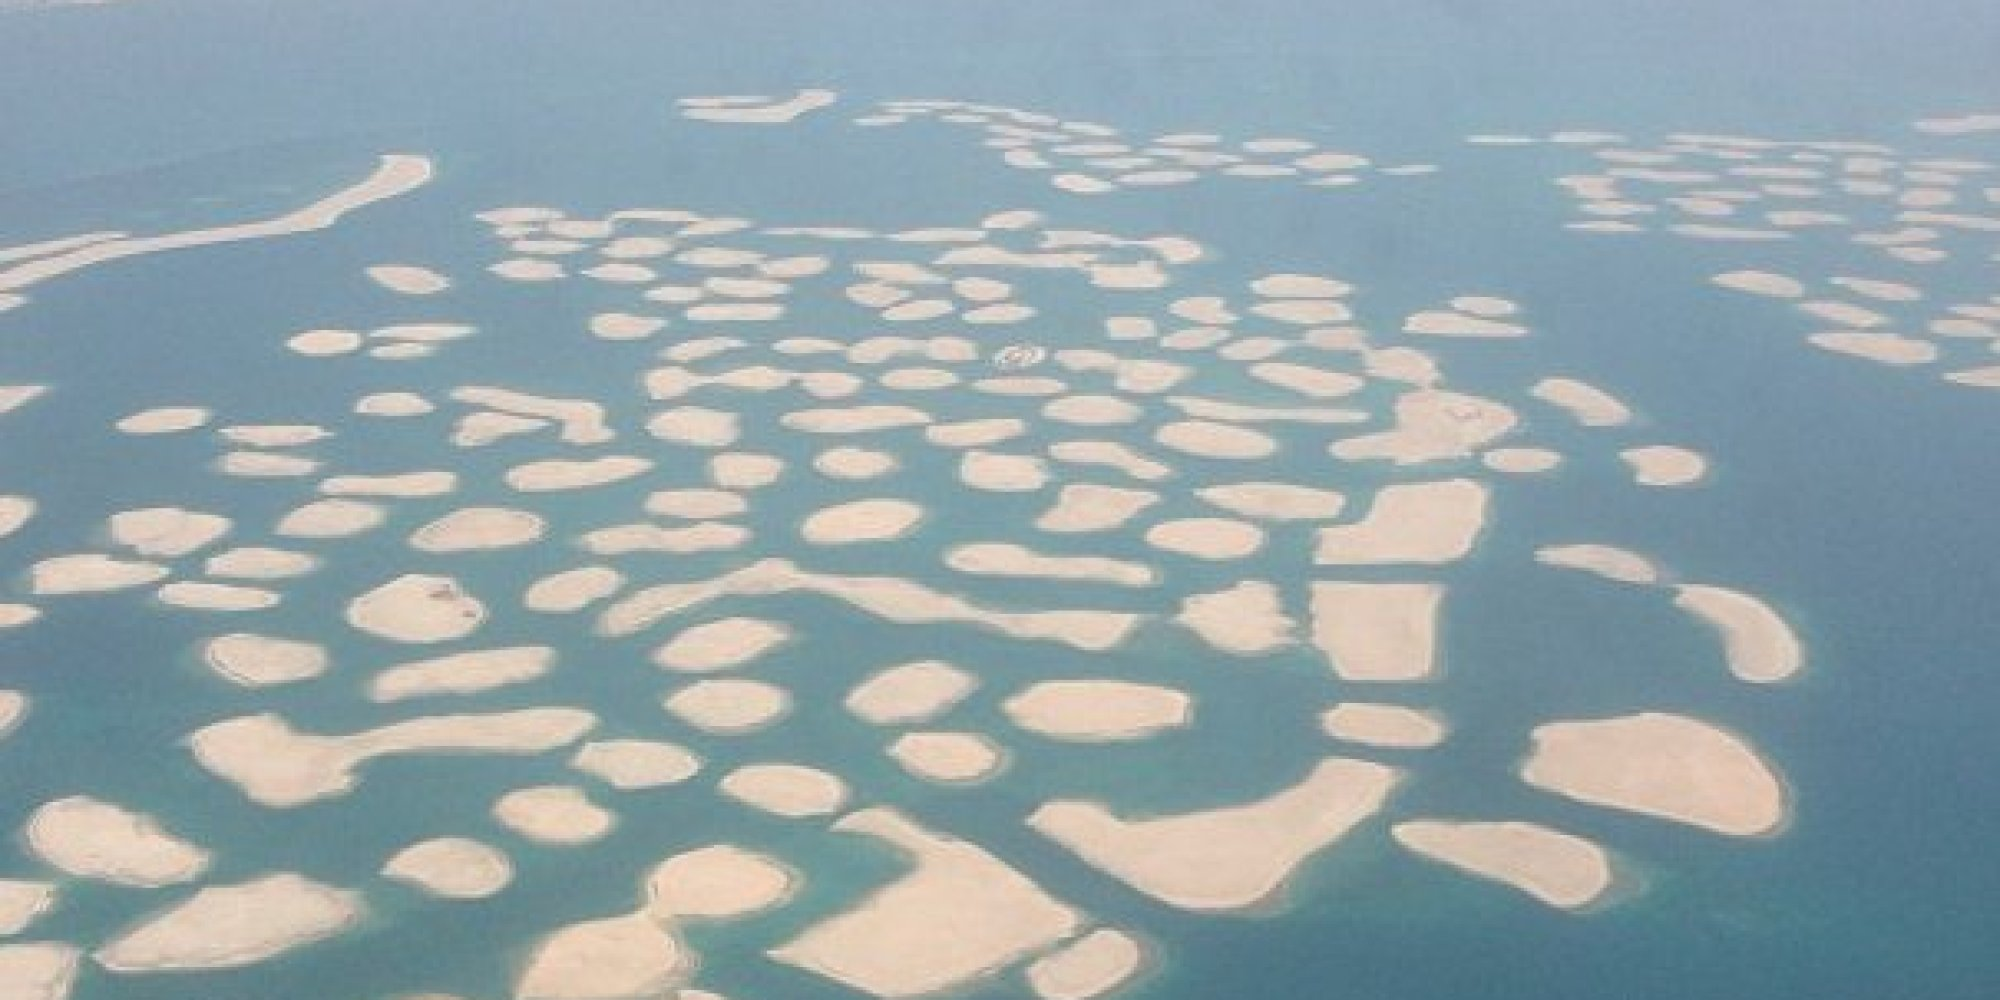 The best view of dubais world islands is from above photos the best view of dubais world islands is from above photos huffpost gumiabroncs Image collections